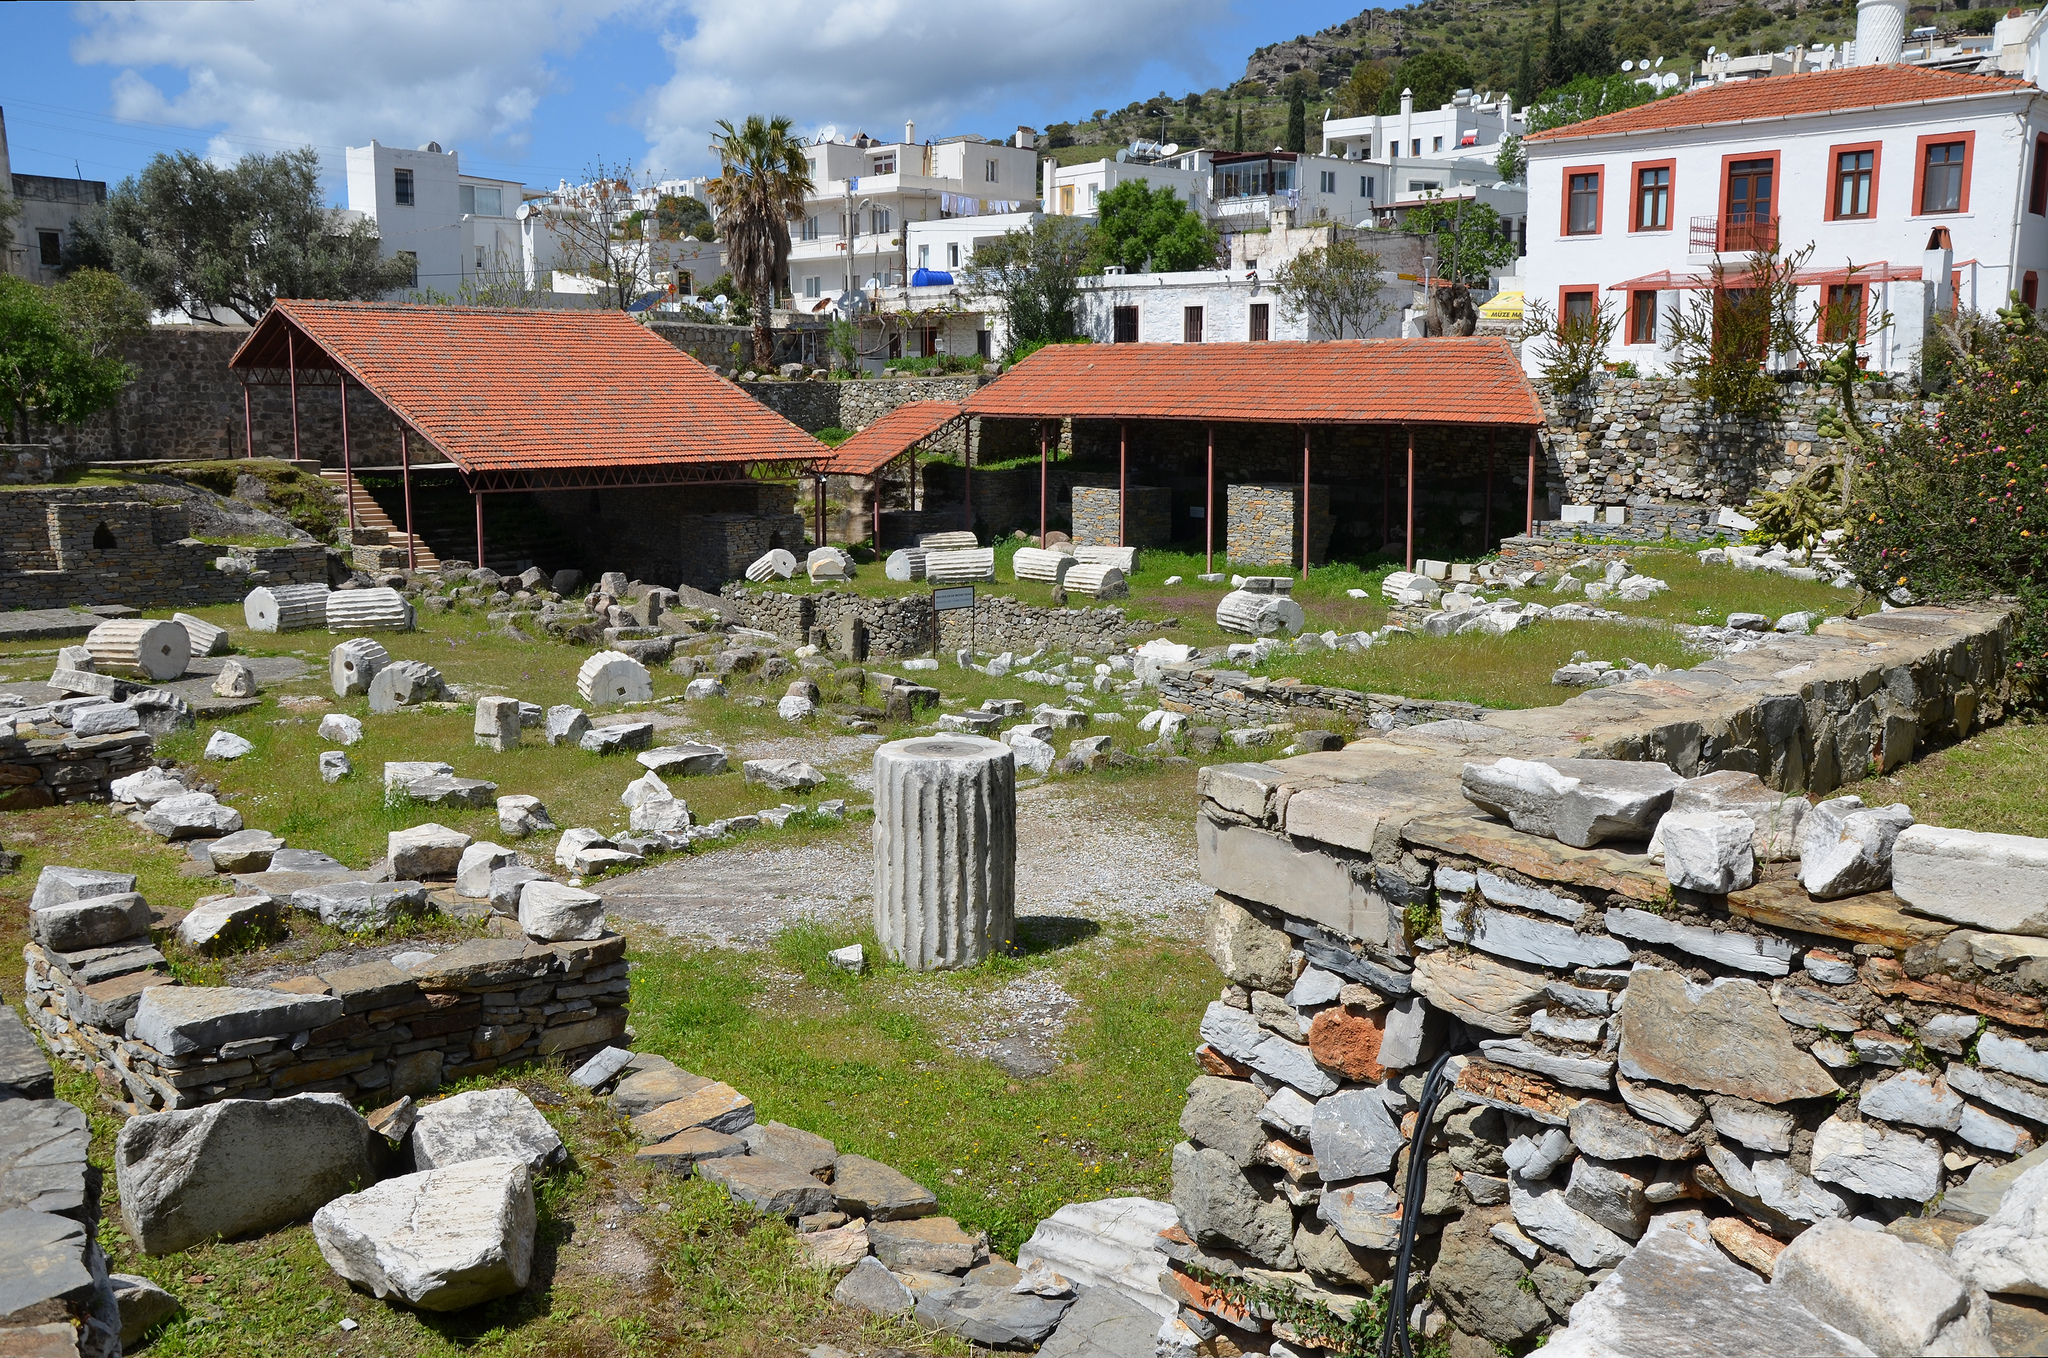 The site of Mausoleum of Halicarnassus.